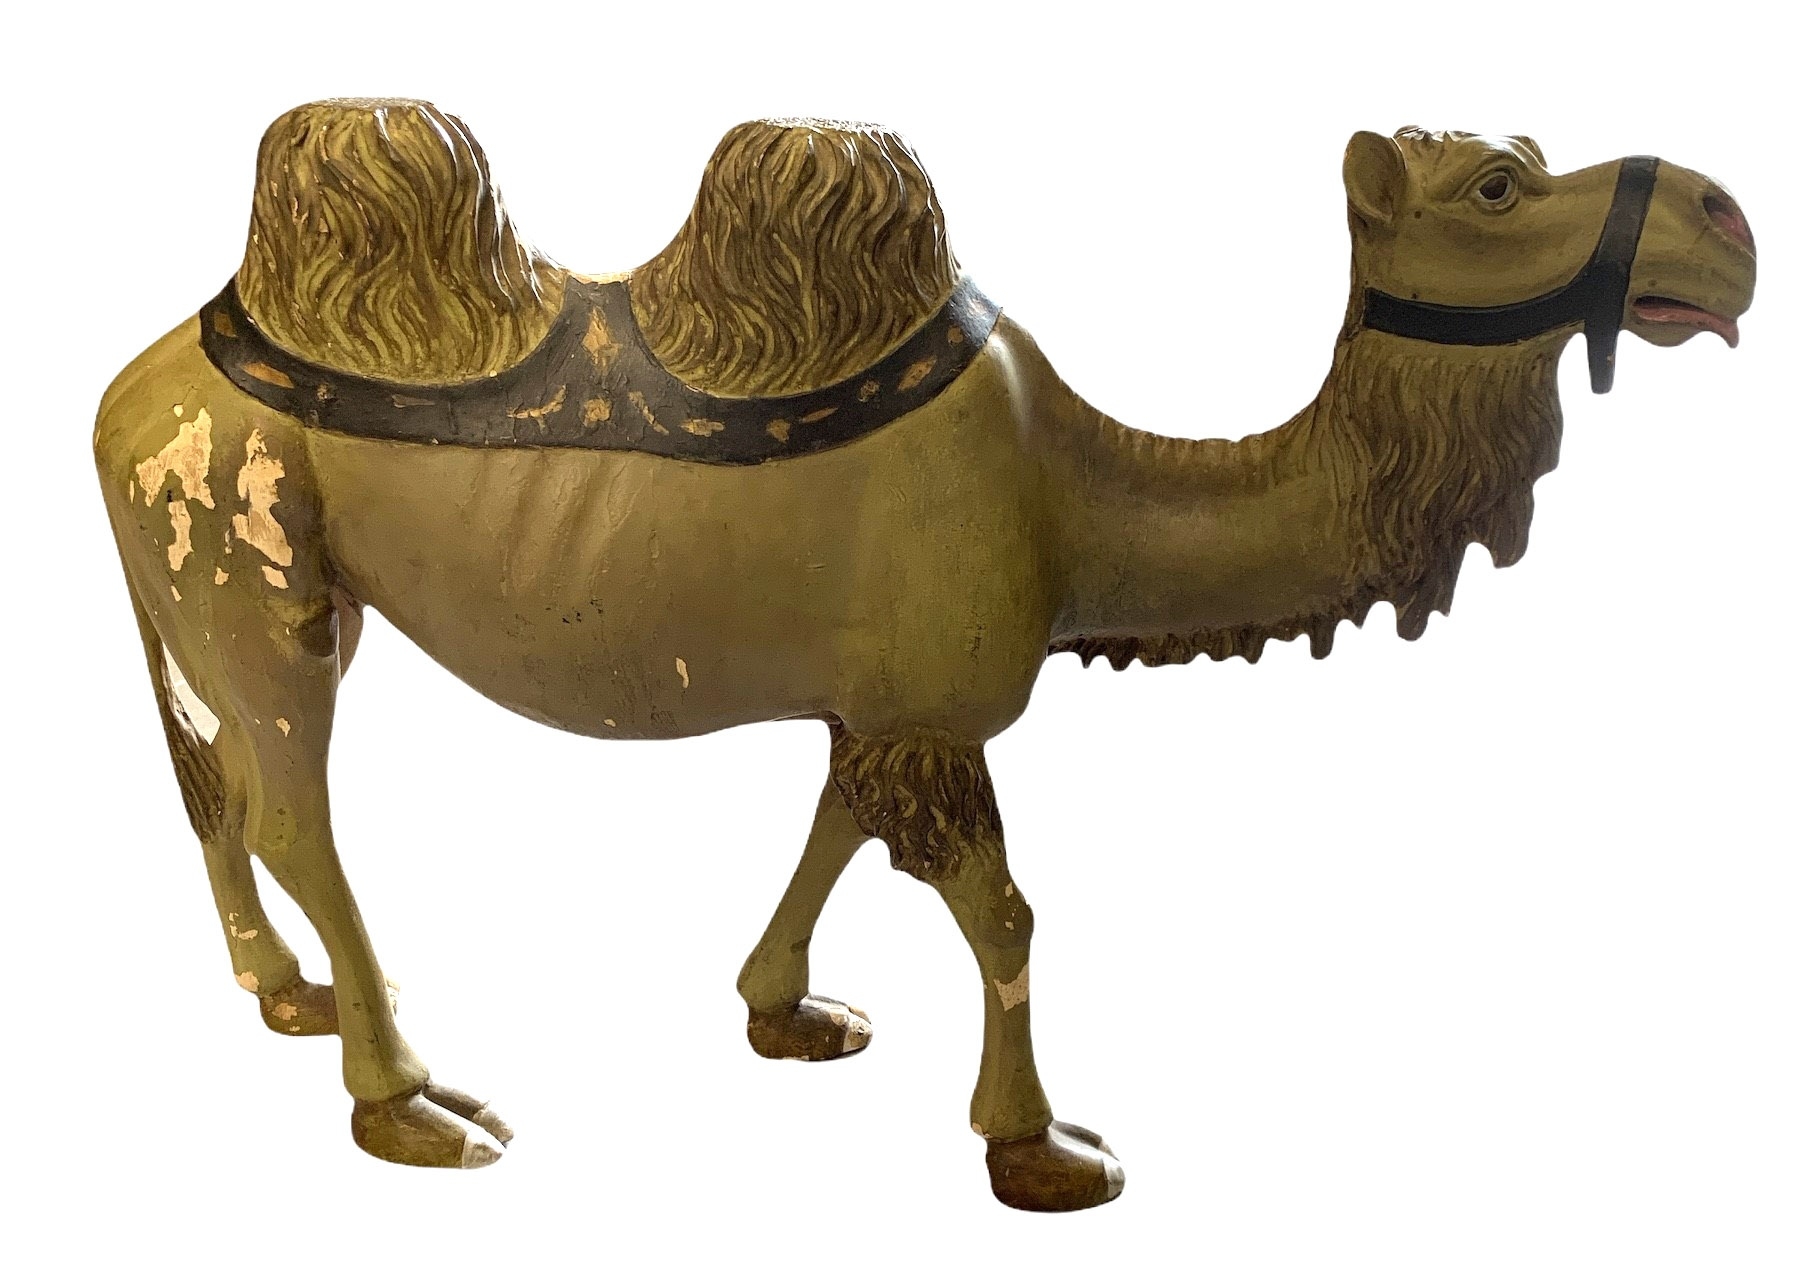 AN EARLY 20TH CENTURY CARVED WOOD AND PAINTED HUMPBACK CAMEL. (h 41cm x w 56cm)